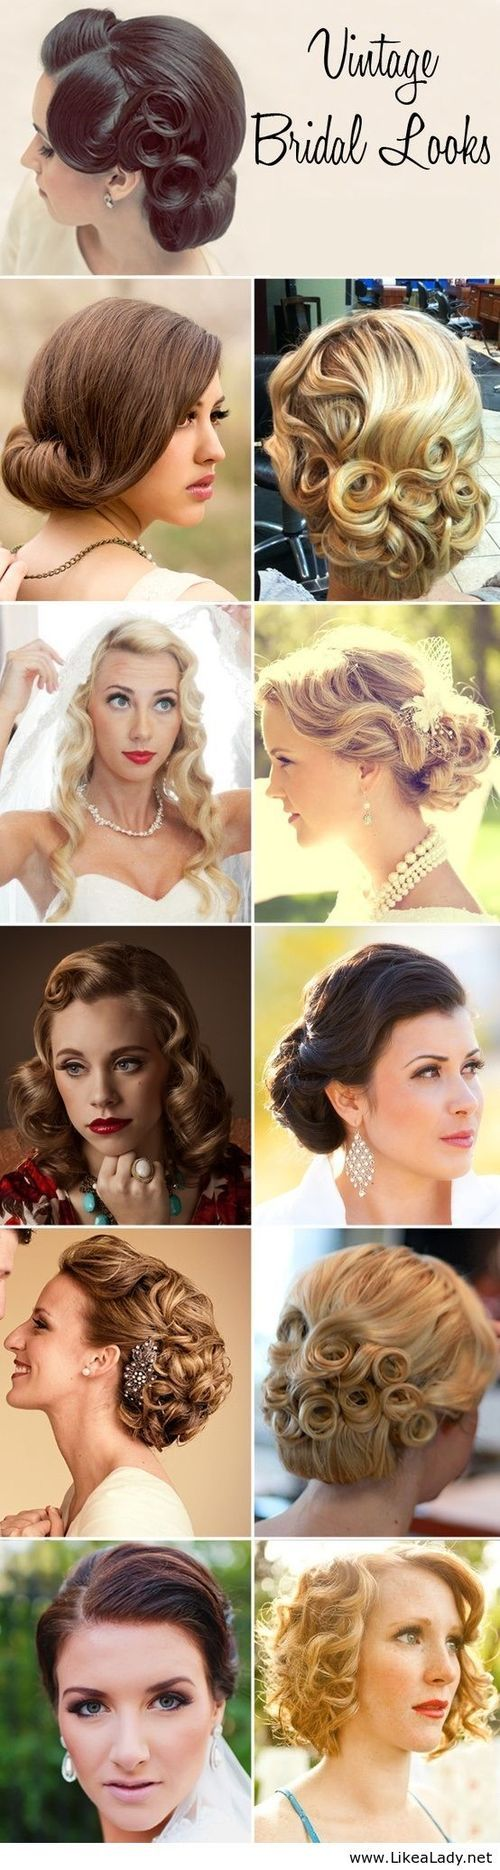 .vintage hair for the bride! 1920's theme! #Bride #Updo #1920theme